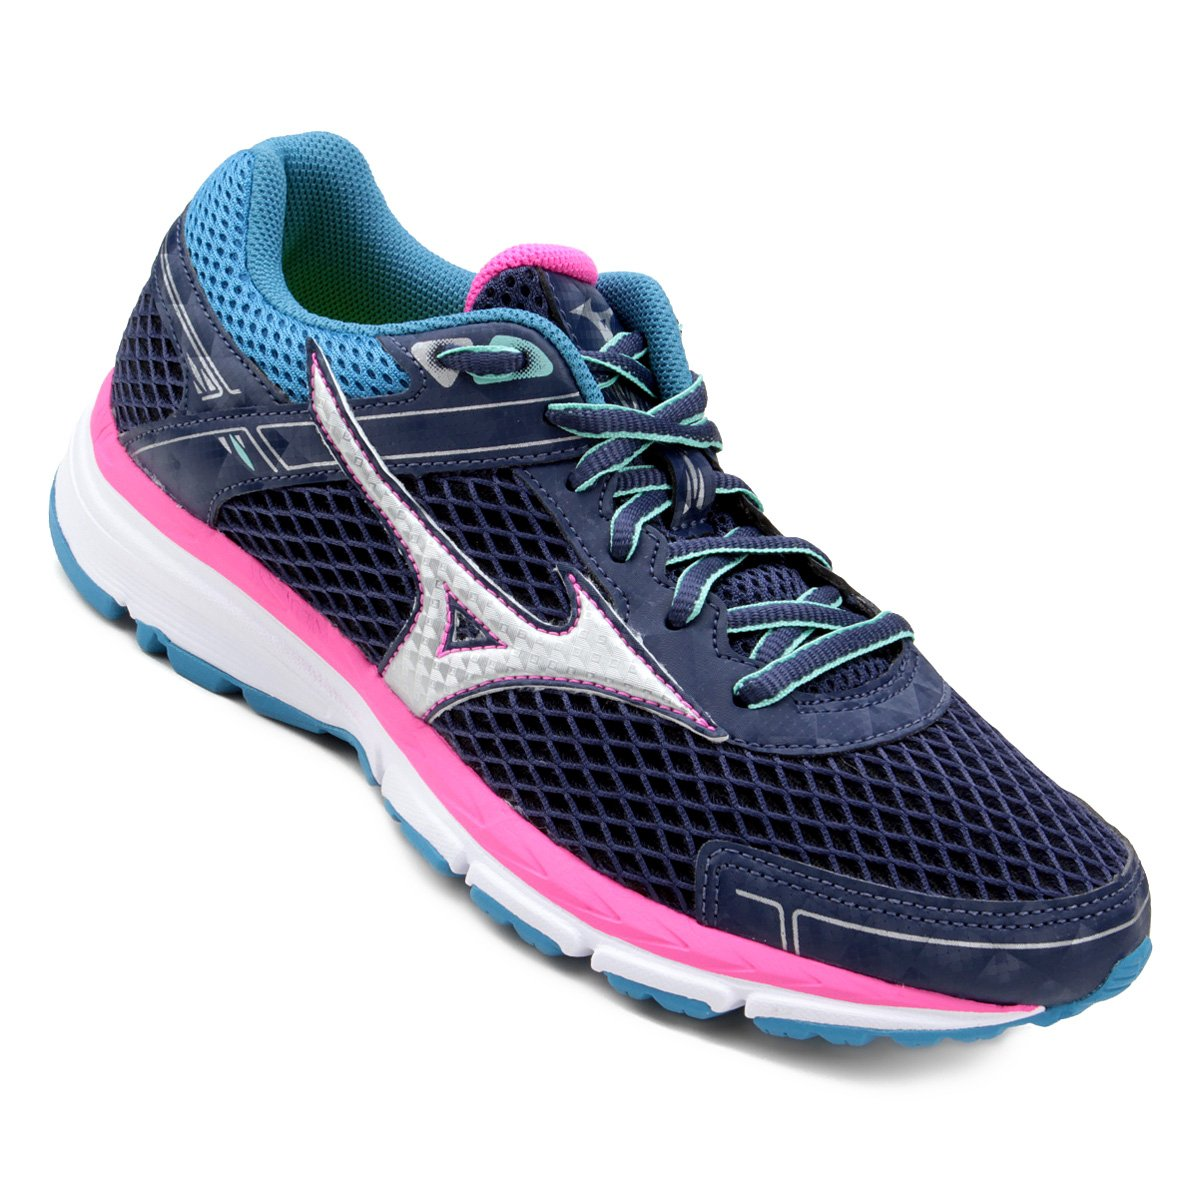 tenis mizuno prophecy 6 netshoes online world